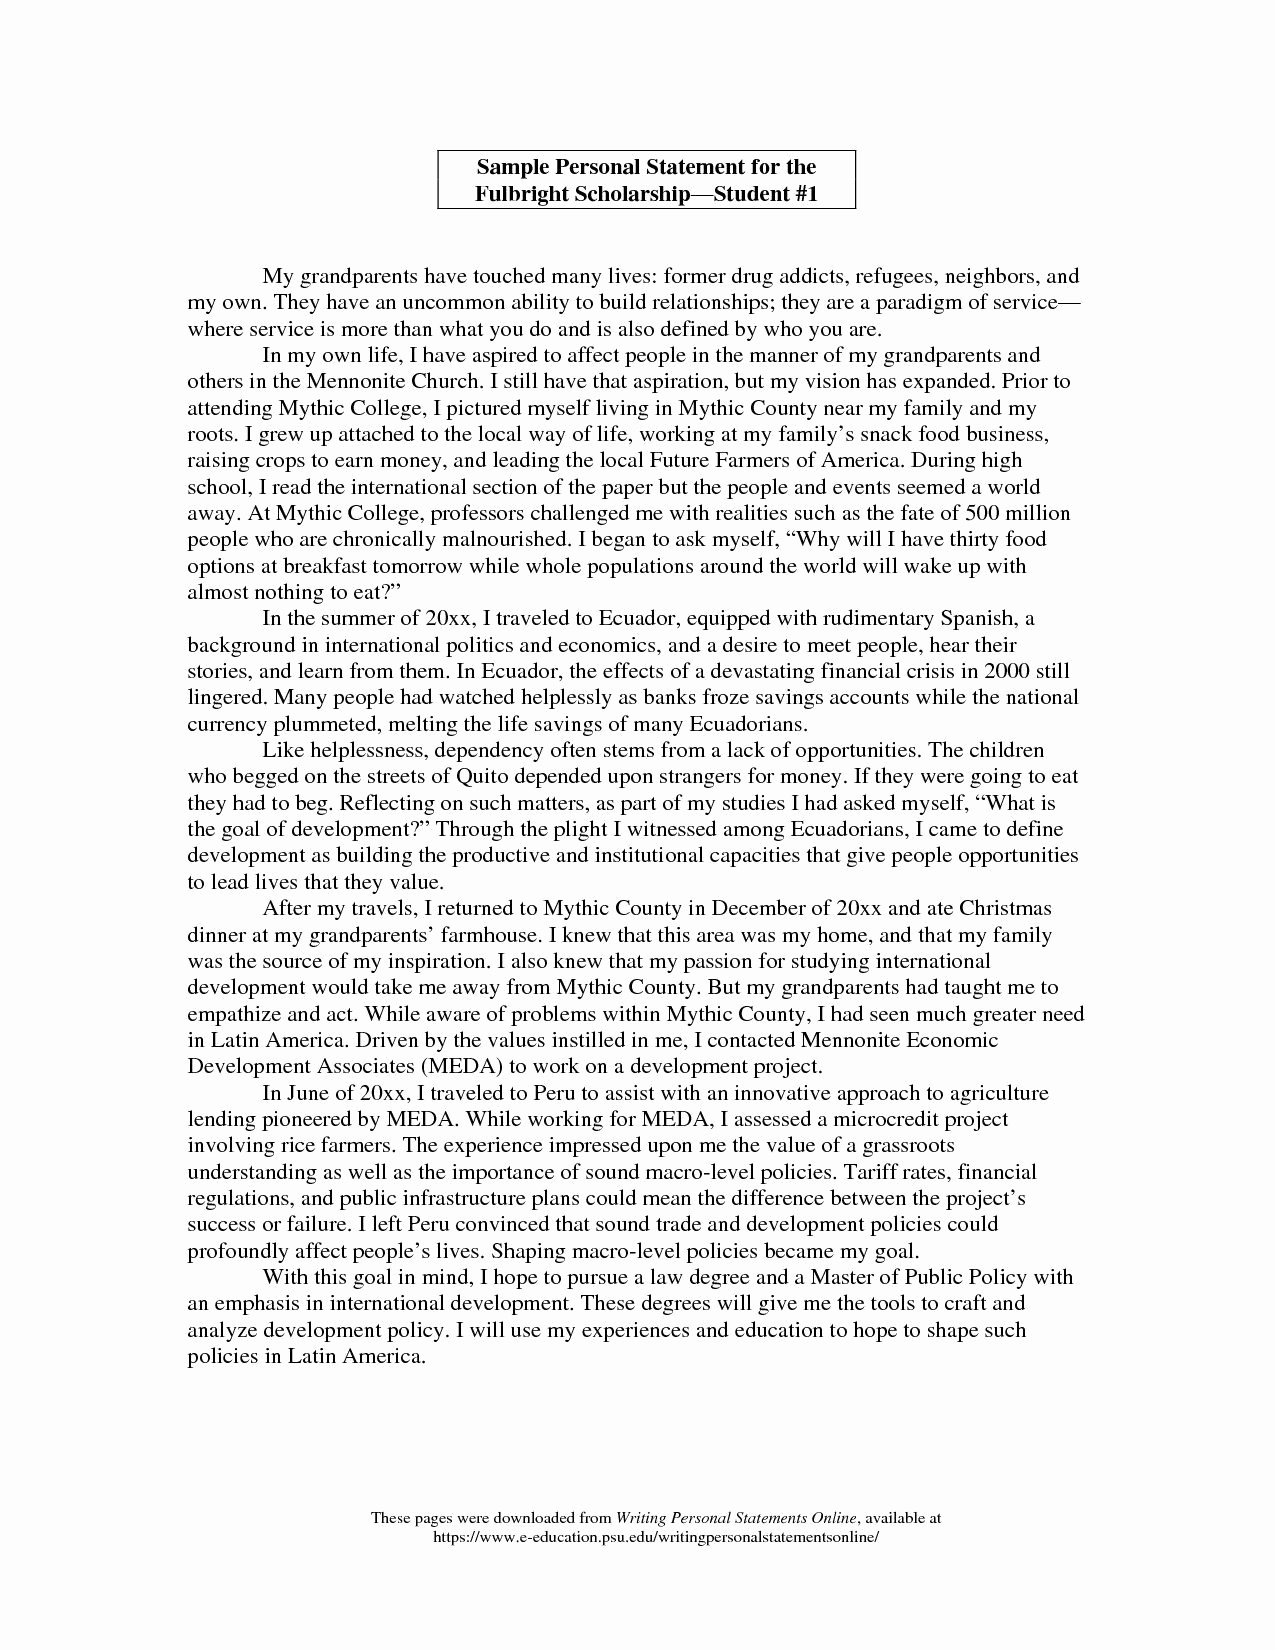 Art Institute Essay Example Awesome Personal Statement Scholarship Letter the John Marshall